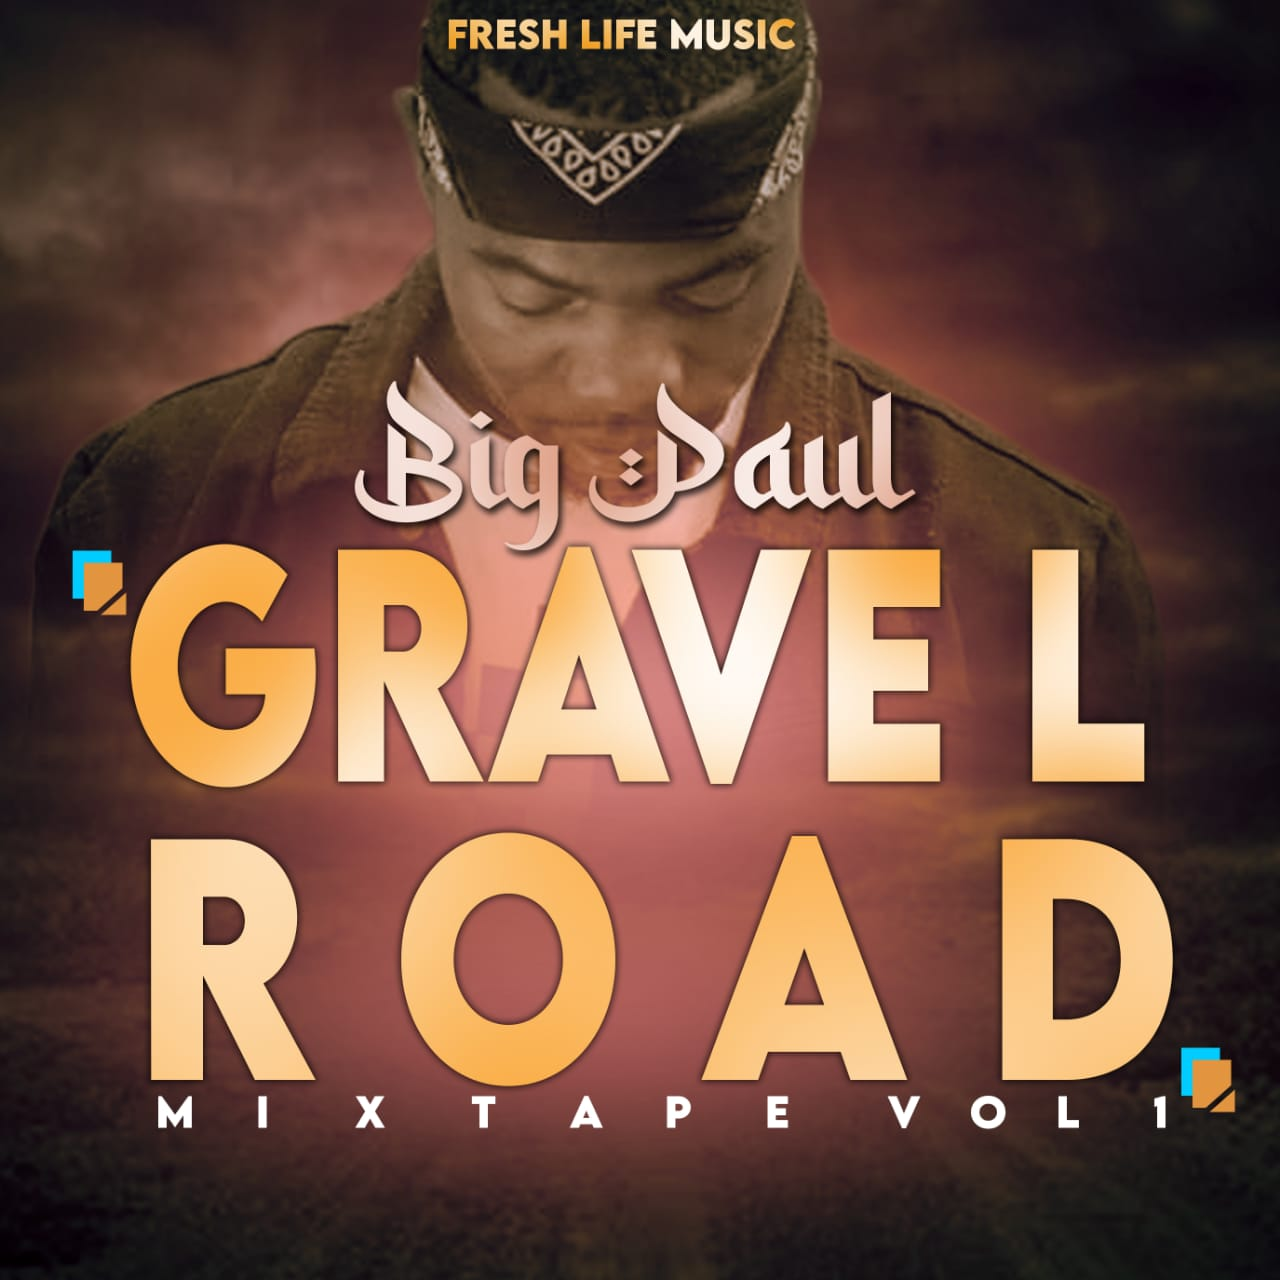 Gravel Road Mixtape Vol 1